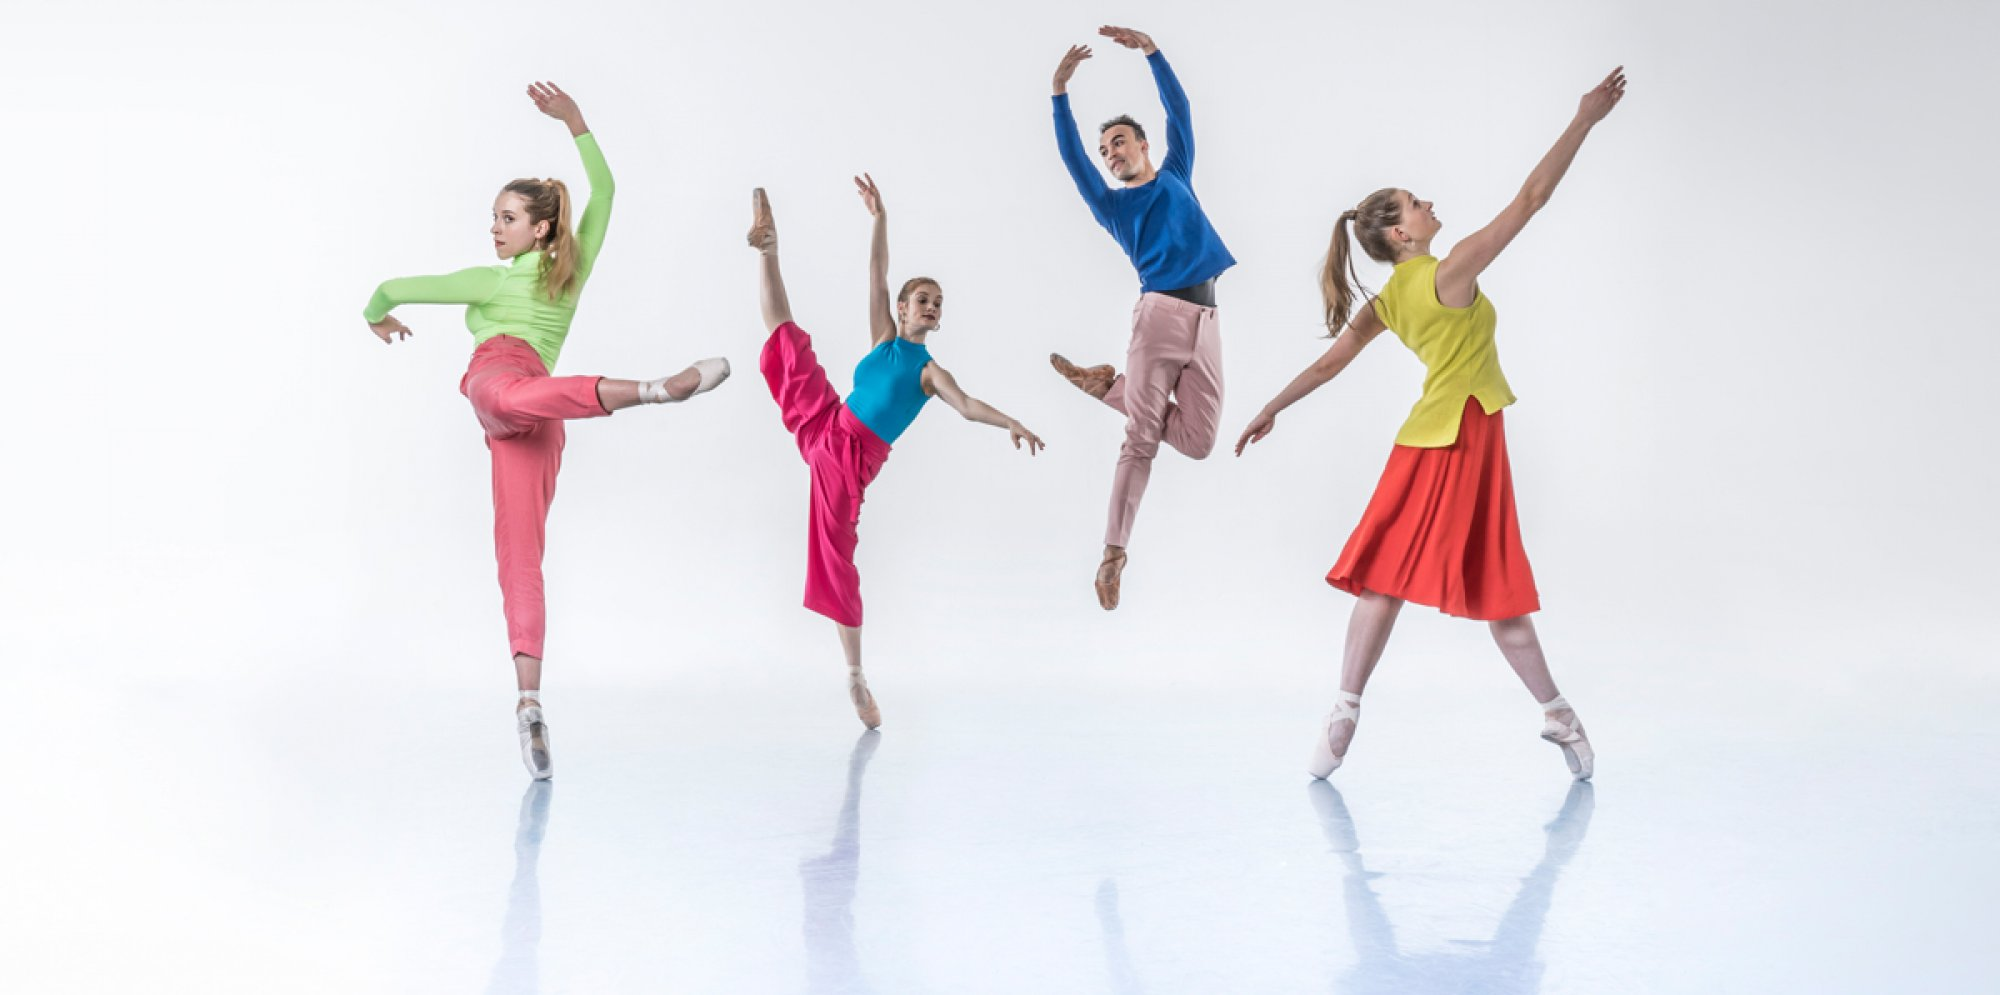 Images Ballet: four dancers in colourful clothes in mid-jump. Photo credit Johan Persson